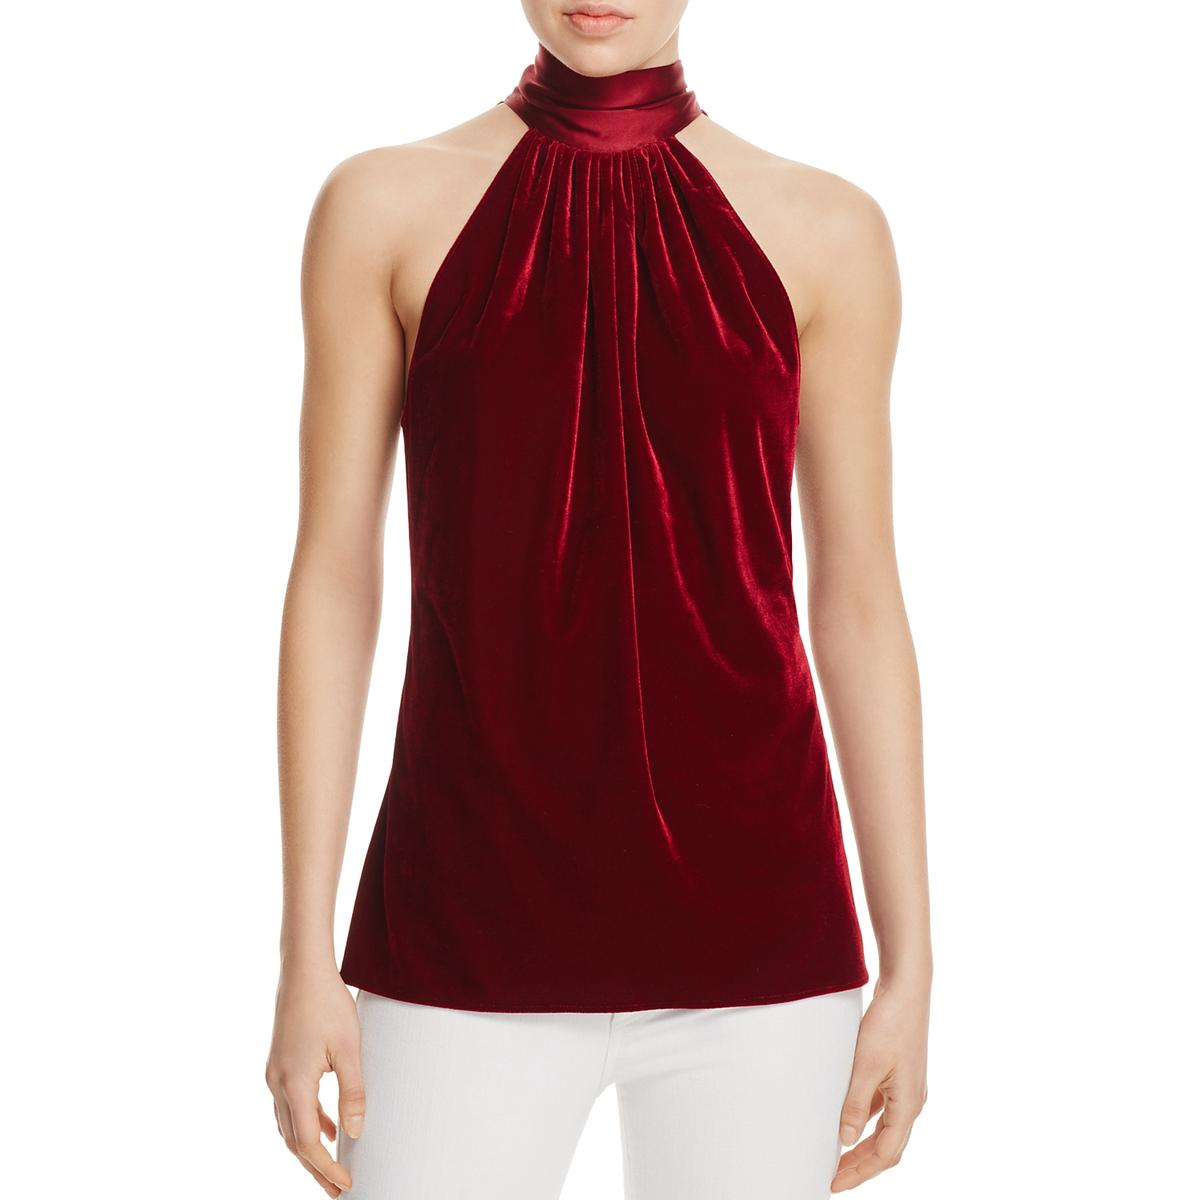 c471d555476a3b Details about Ramy Brook Womens Paige Red Velvet Halter Sleeveless Blouse  Top M BHFO 3516